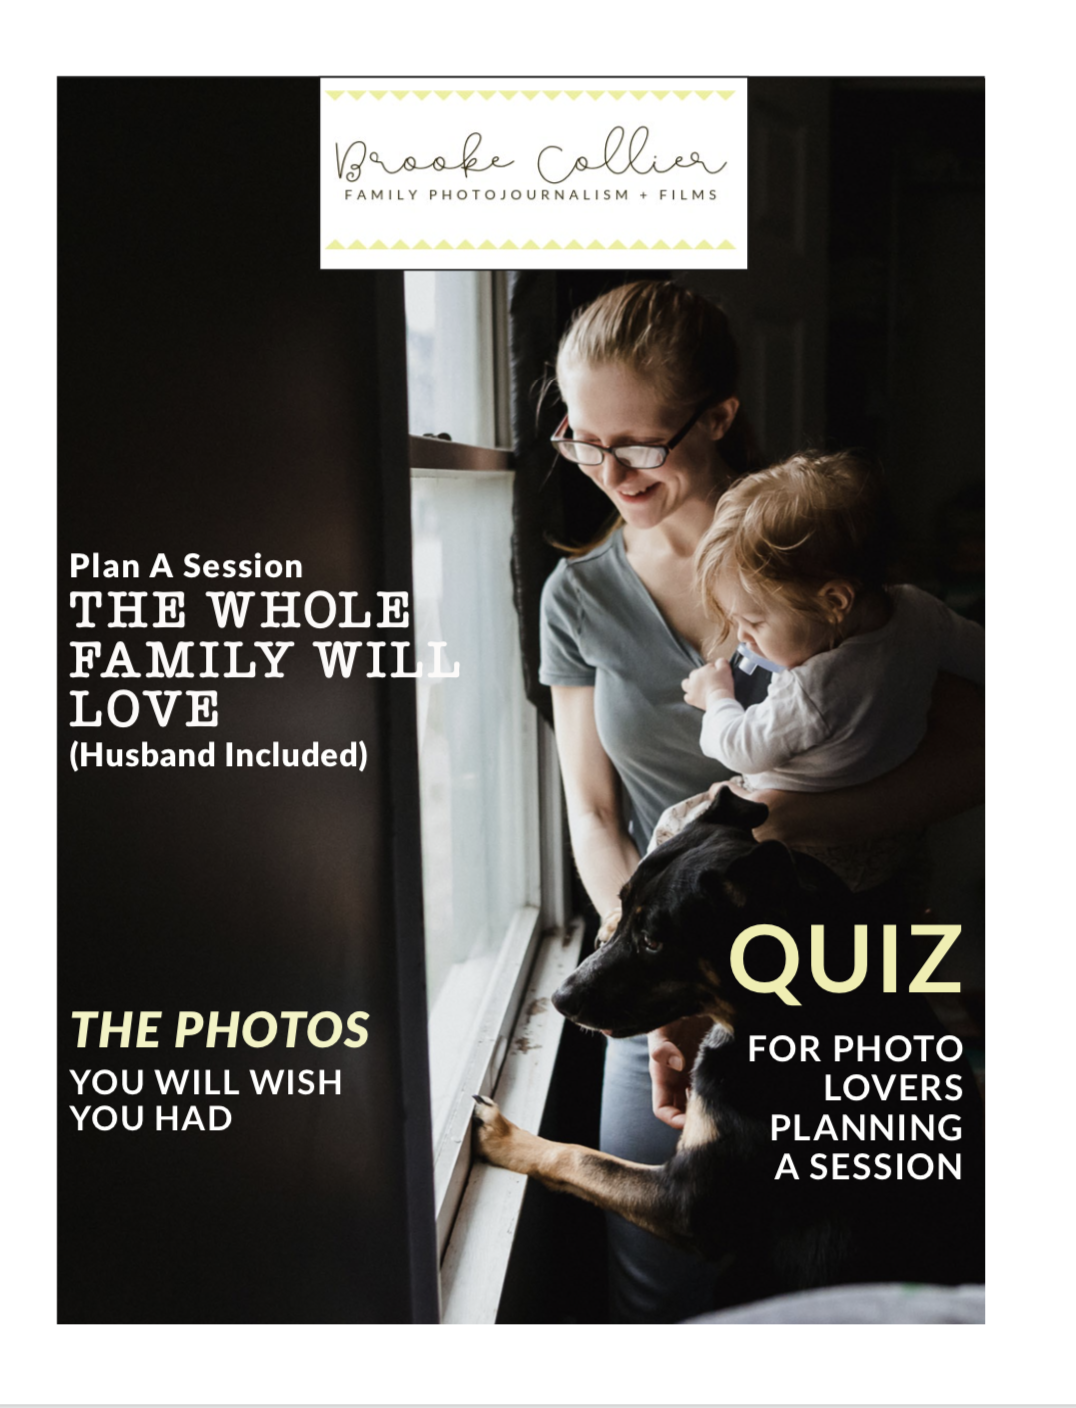 Click this image to visit my Client Guide for Family Photojournalism Sessions. It'll tell you EVERYTHING.